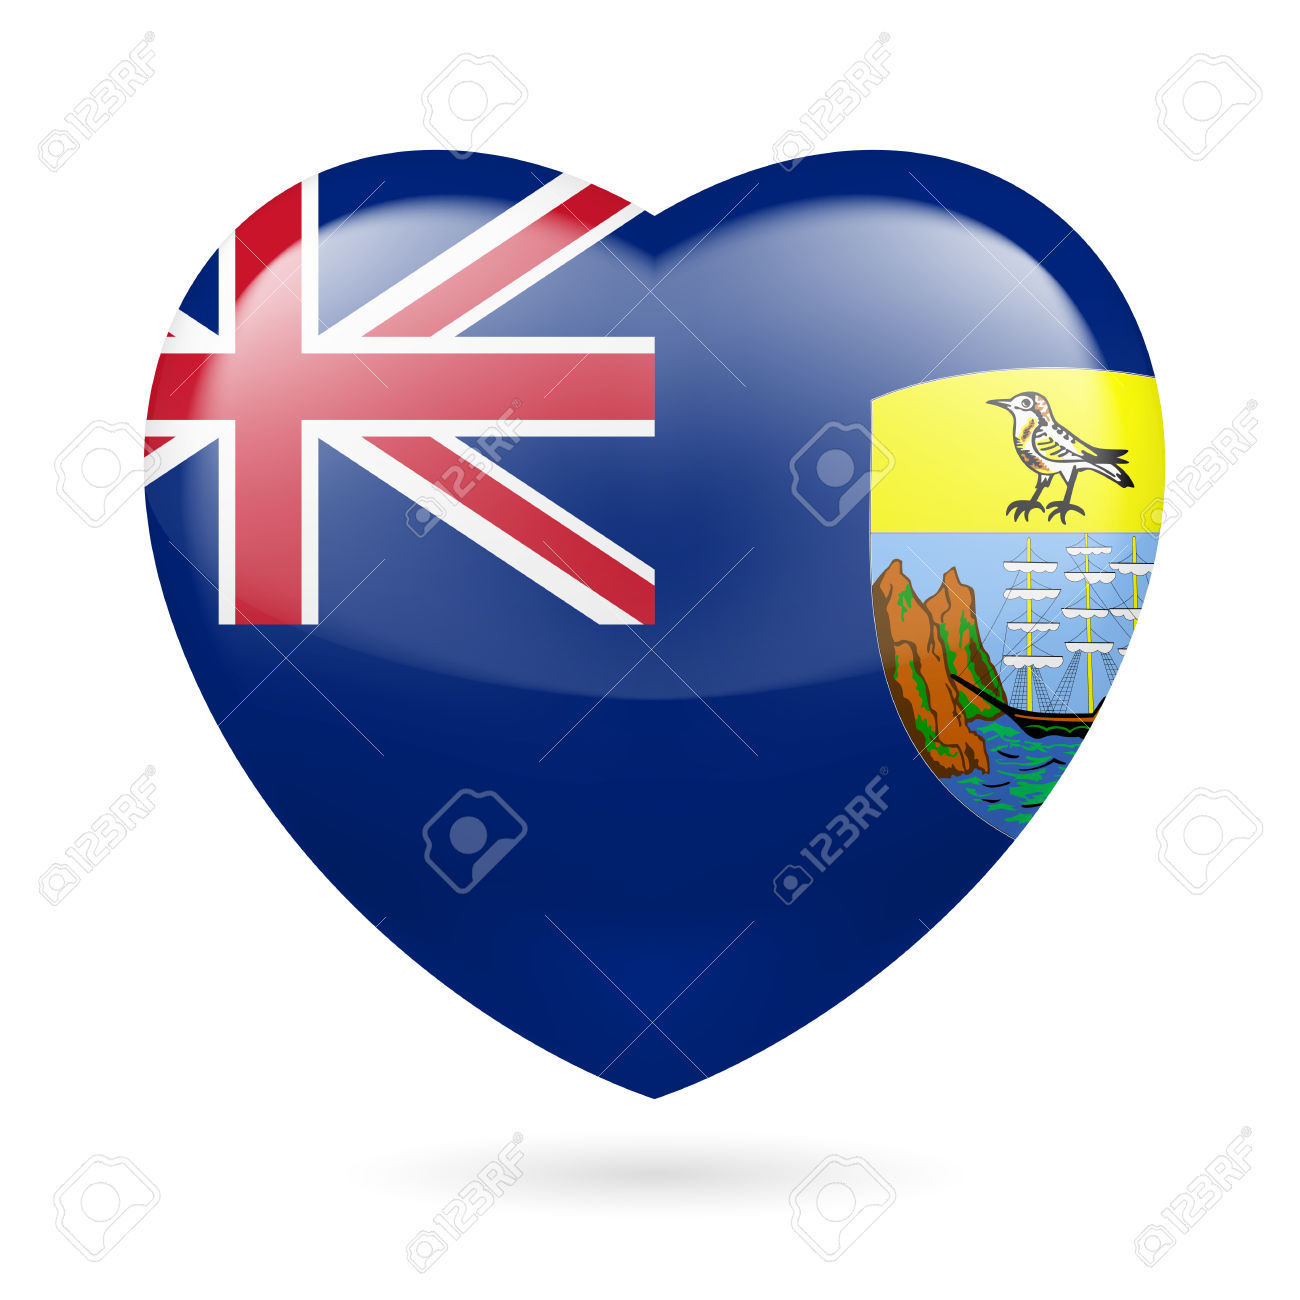 I Love Saint Helena, Ascension And Tristan Da Cunha. Heart With.